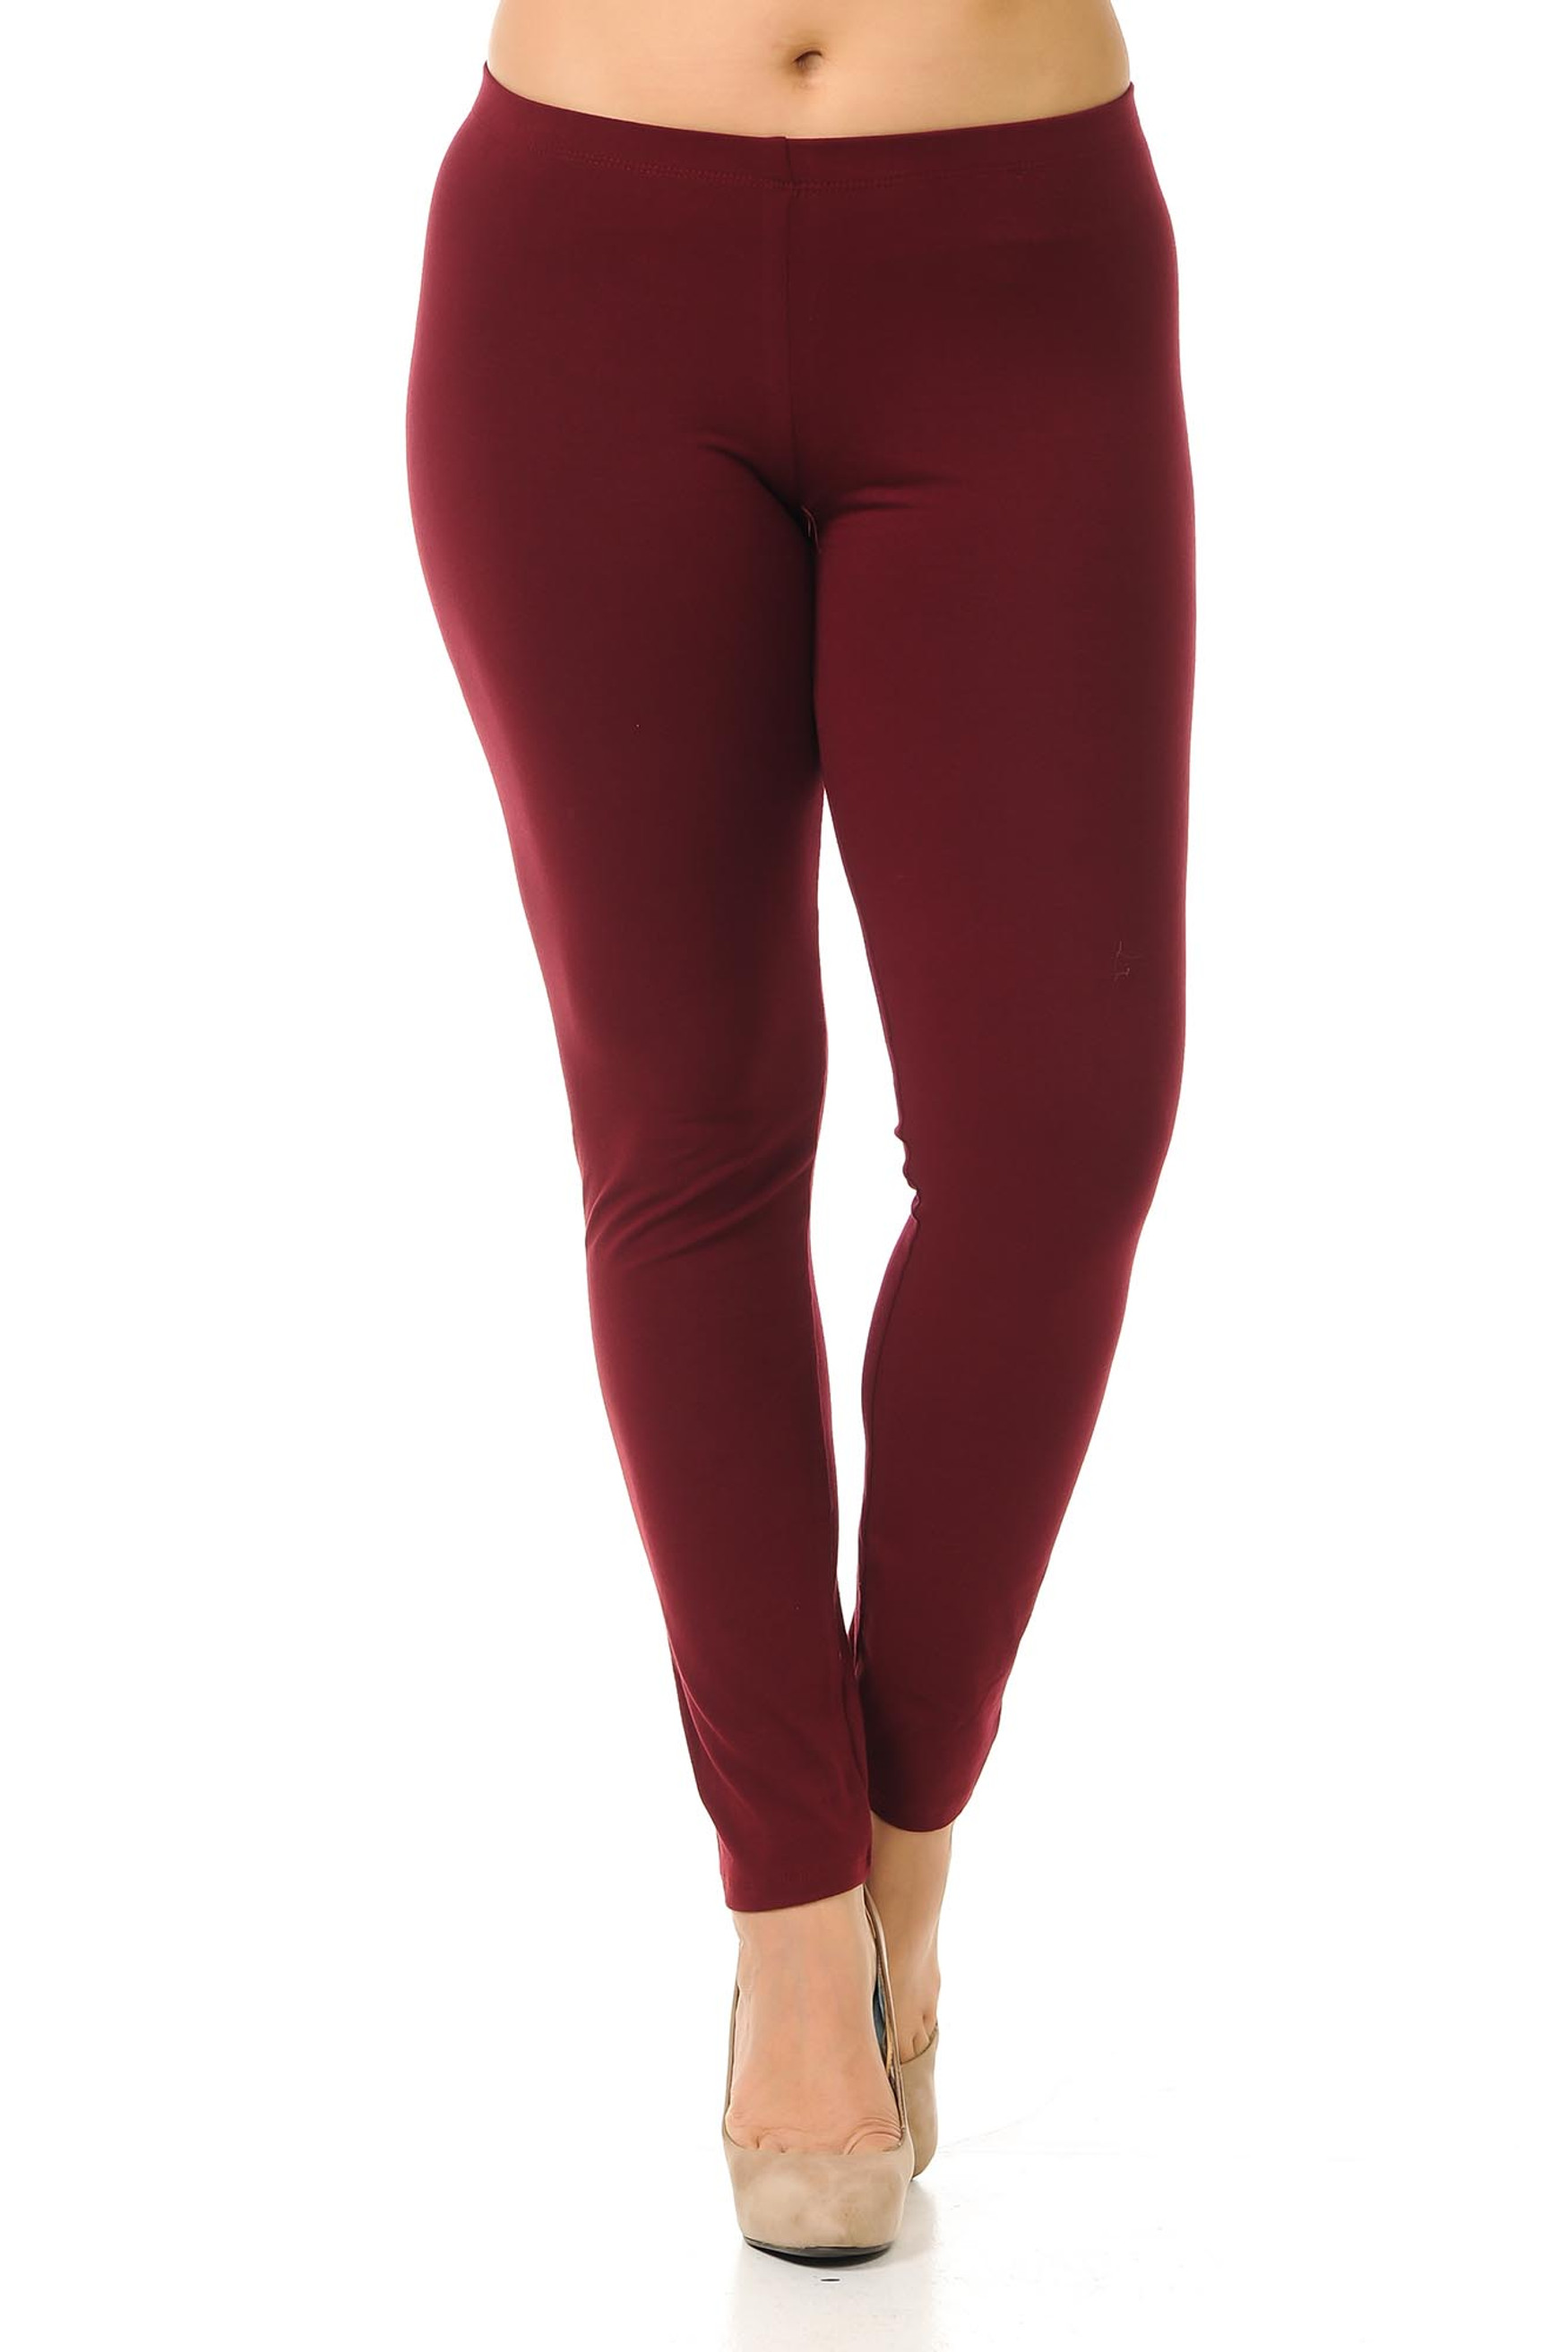 Front view image of full length plus size made int he USA cotton leggings in burgundy.